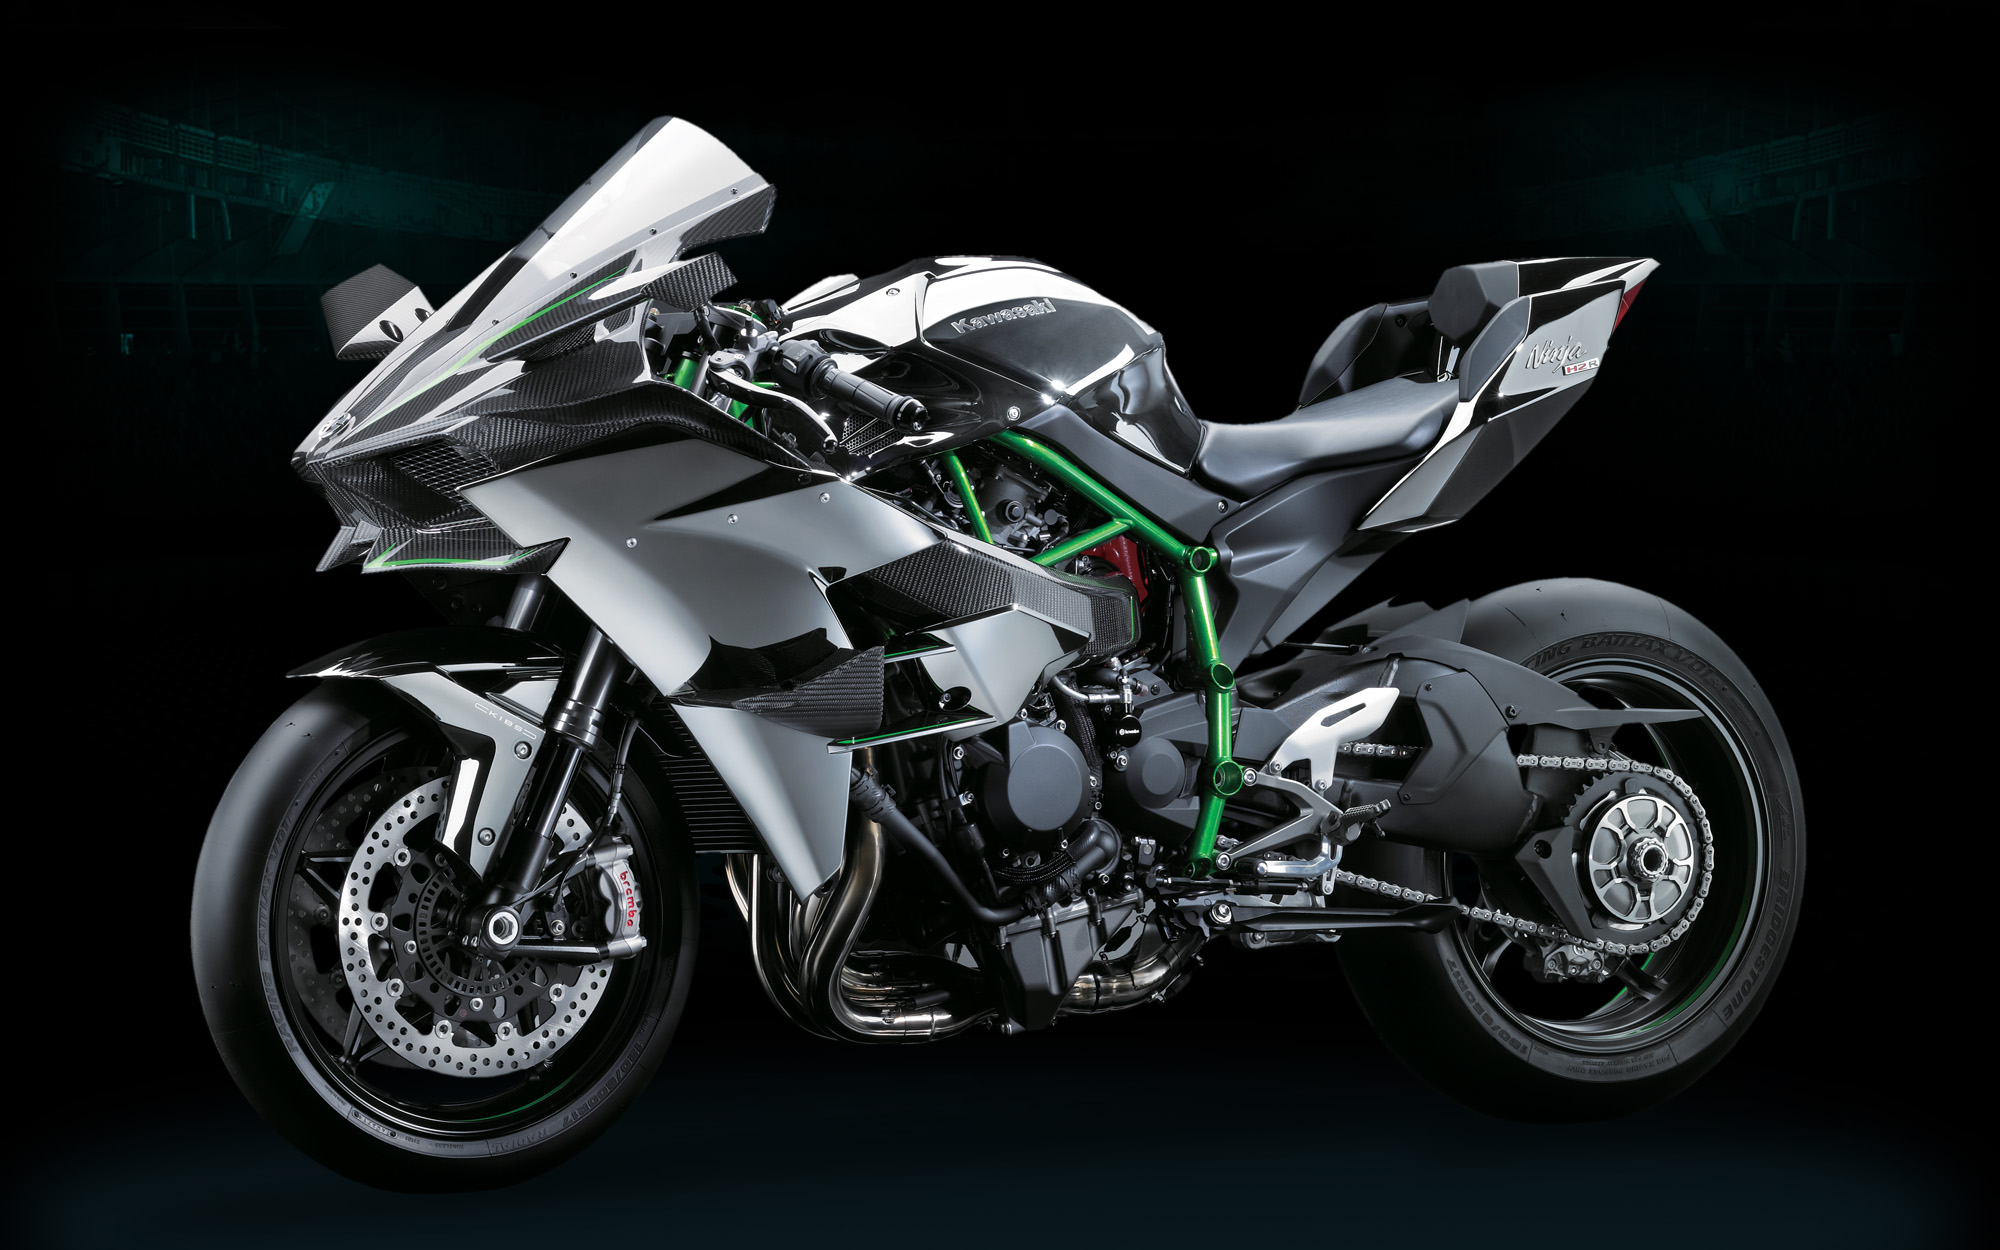 Kawasaki Ninja H2r Makes 300 Horsepower Revzilla